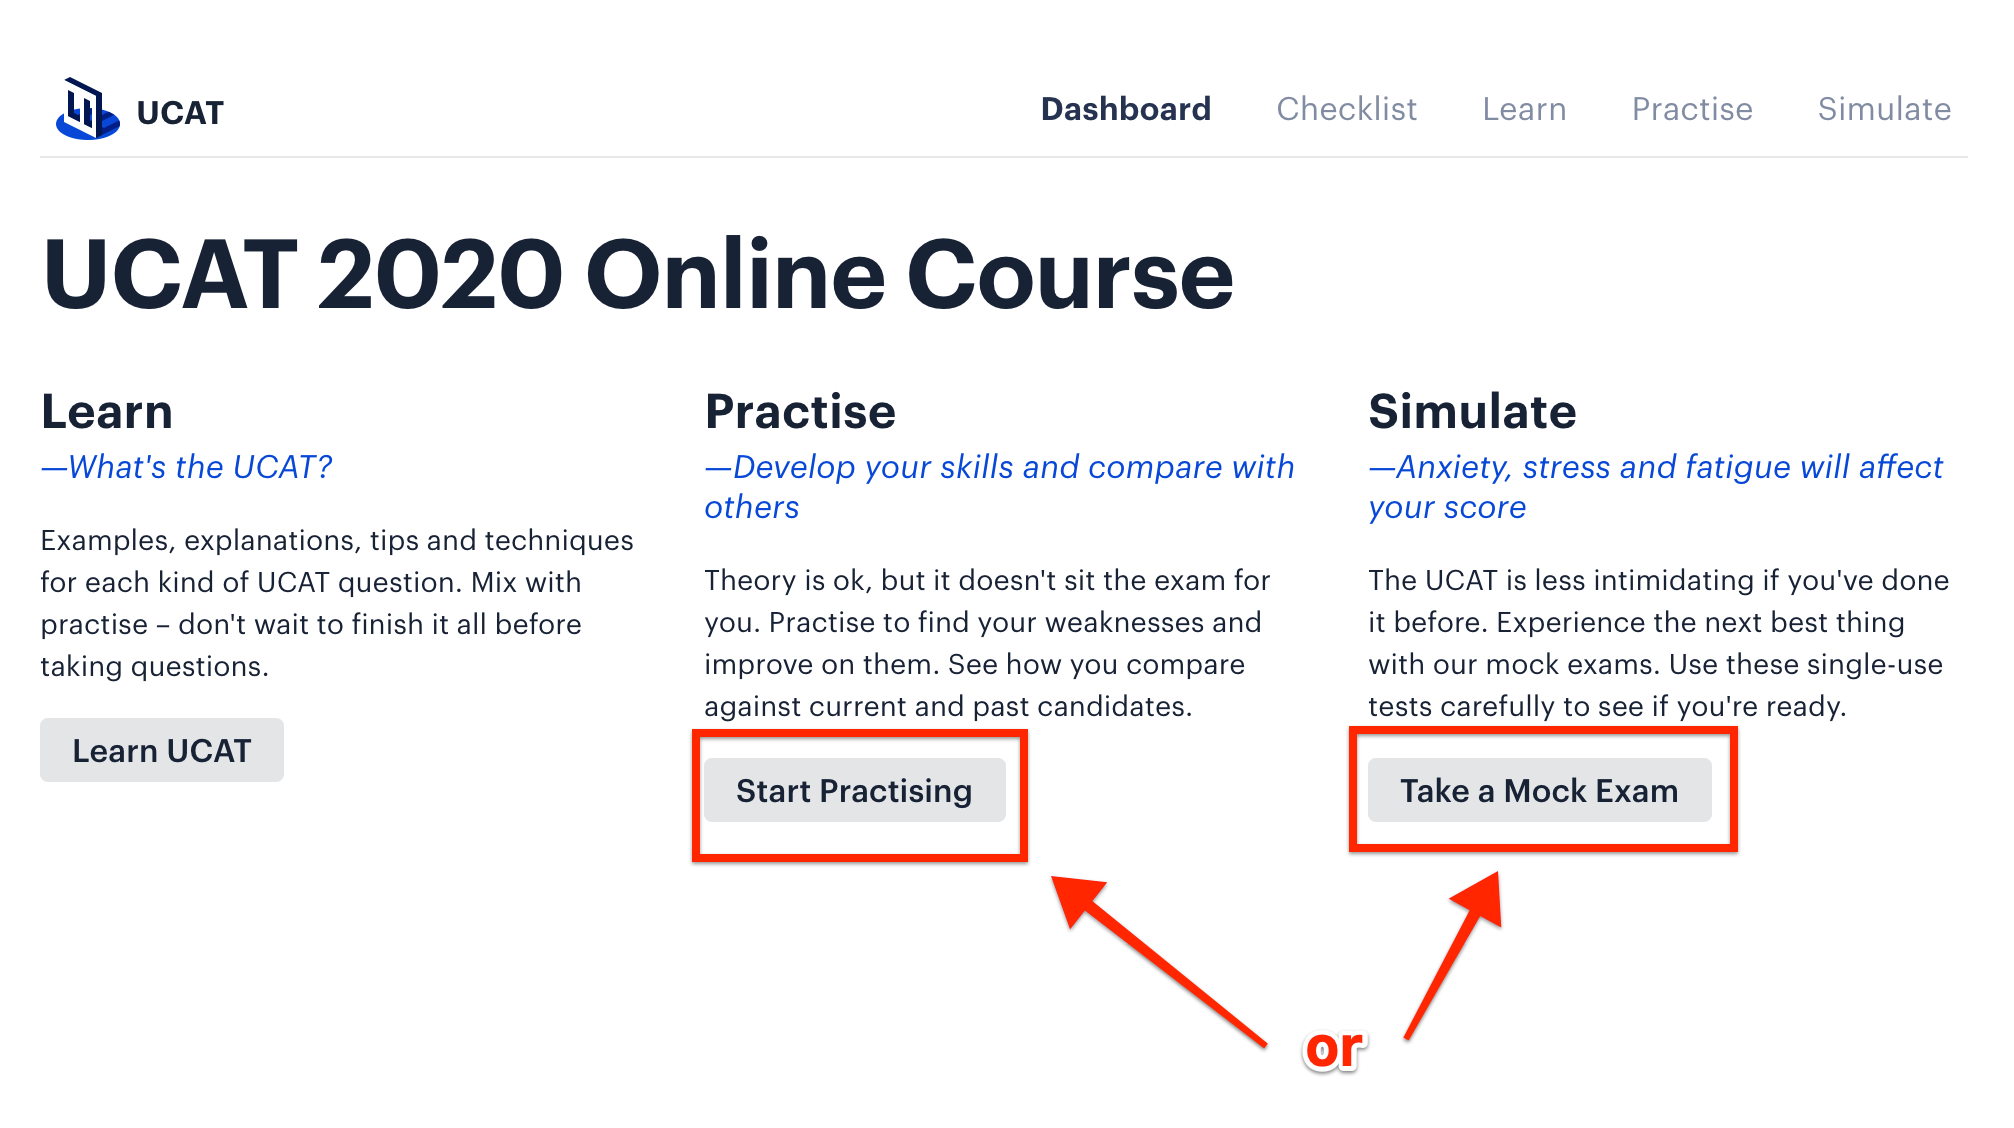 A screenshot showing Medify's online UCAT course webpage, with red arrows pointing towards the 'Start Practising' and 'Take a Mock Exam' button